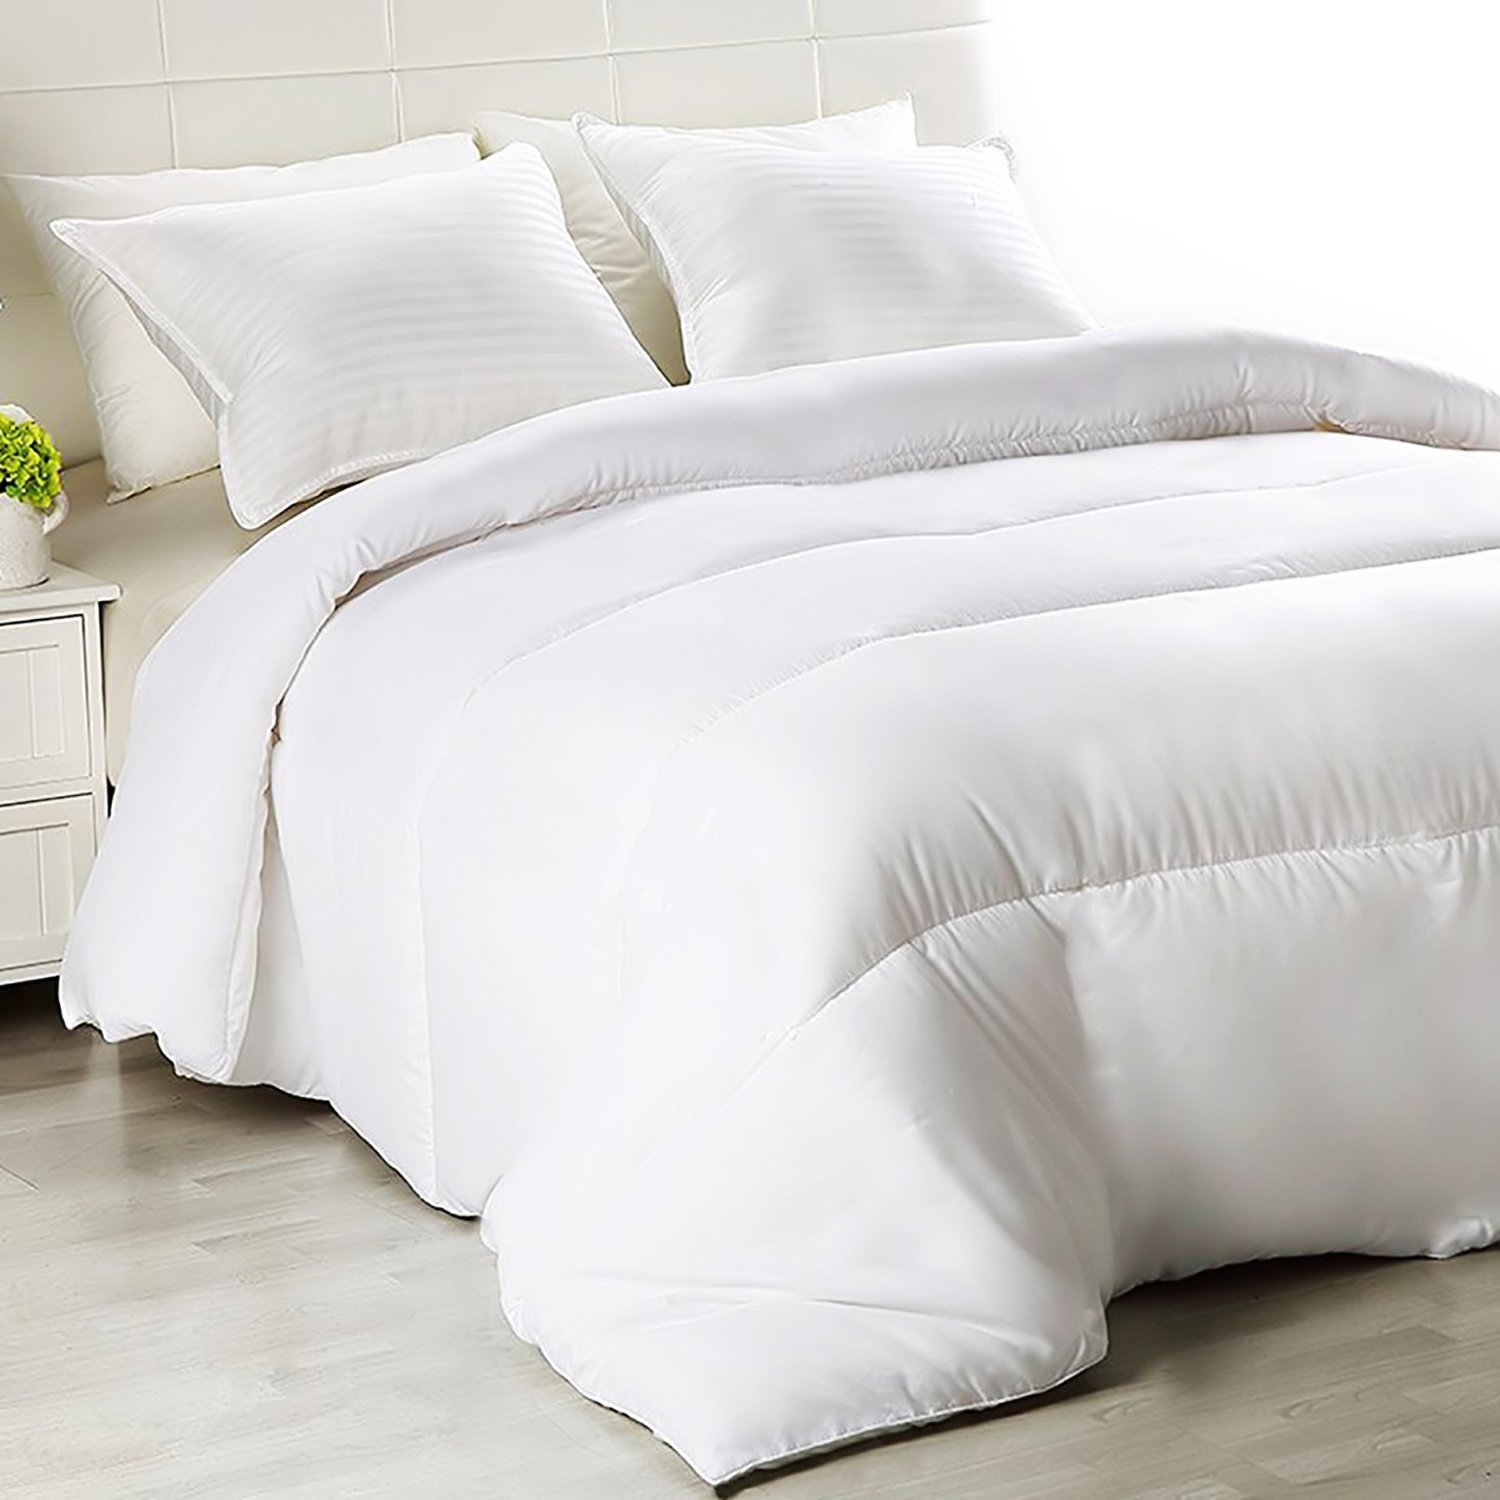 Equinox Thin Duvet Insert (86''x 86'') - White, All Season Down Alternative Comforter Insert, Hypoallergenic, Soft, Plush Microfiber fill, Machine Washable, Queen Size